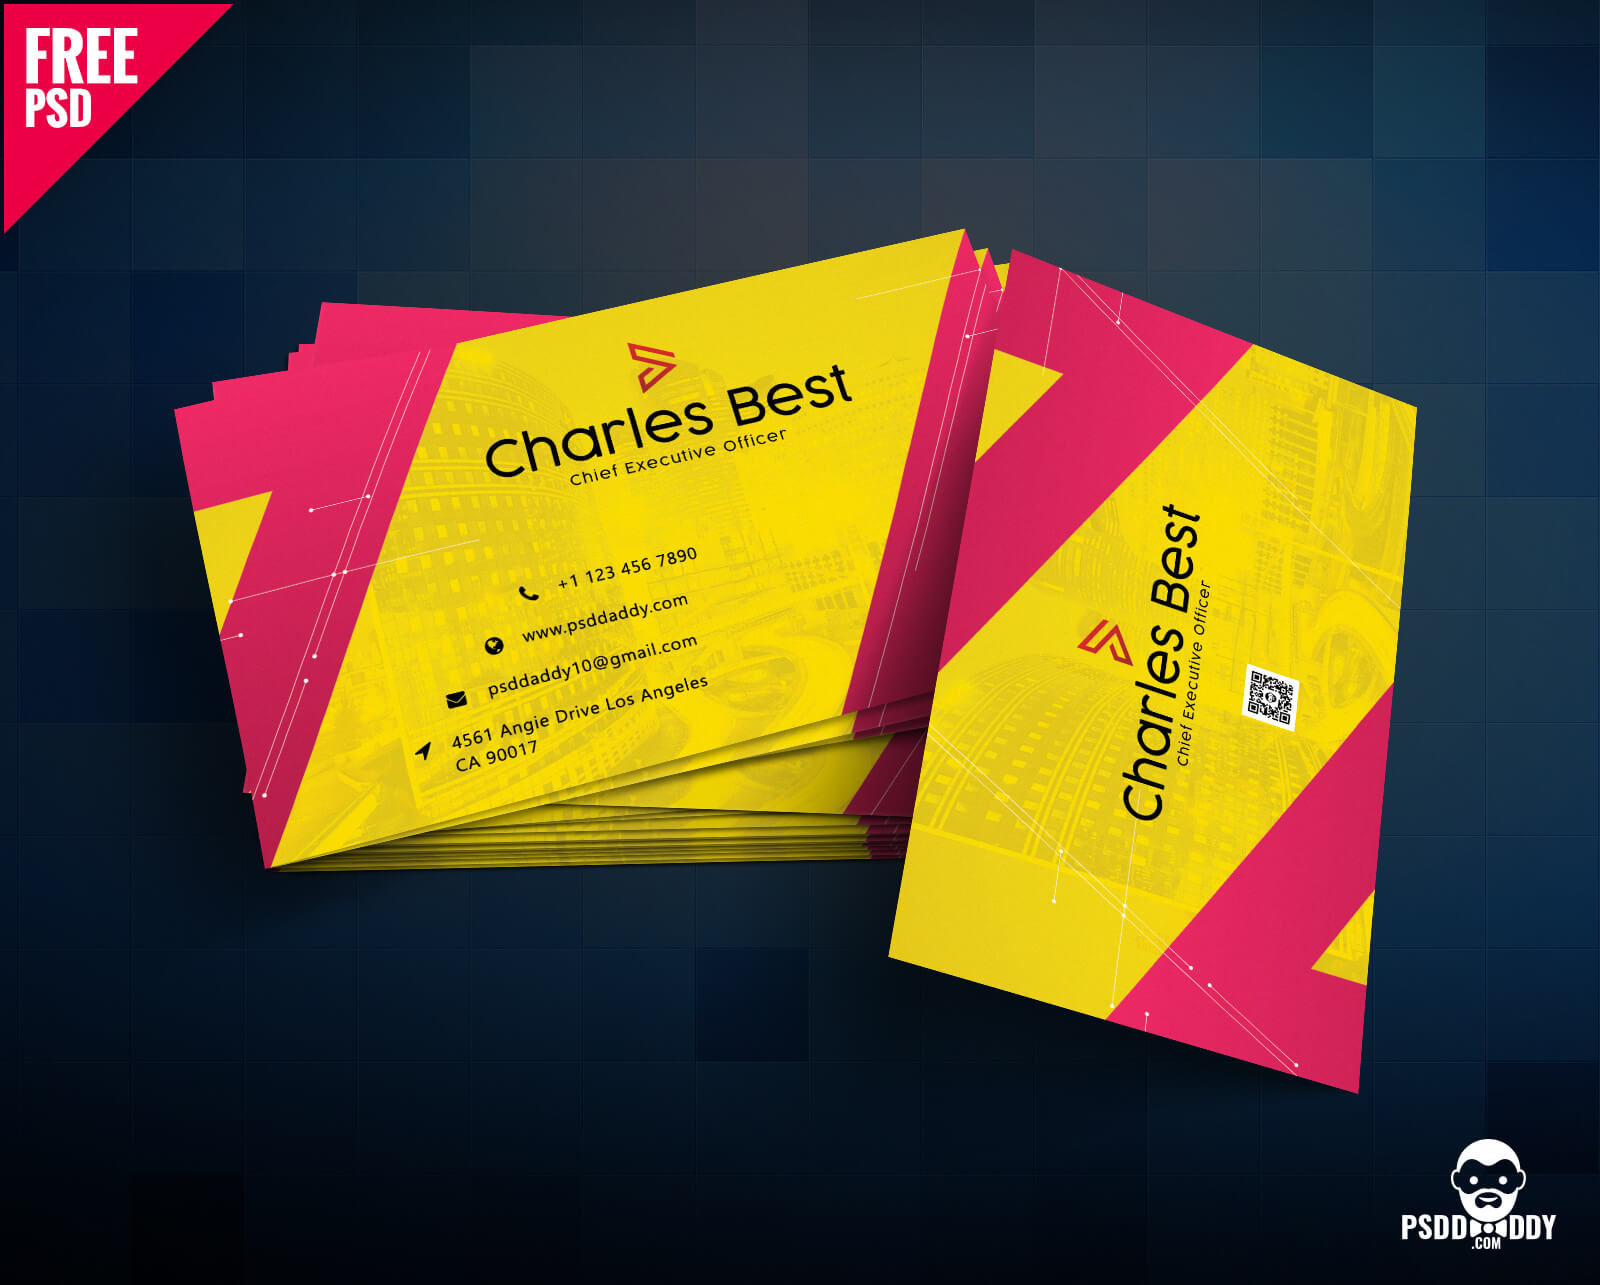 Download] Creative Business Card Free Psd | Psddaddy Pertaining To Business Card Template Photoshop Cs6